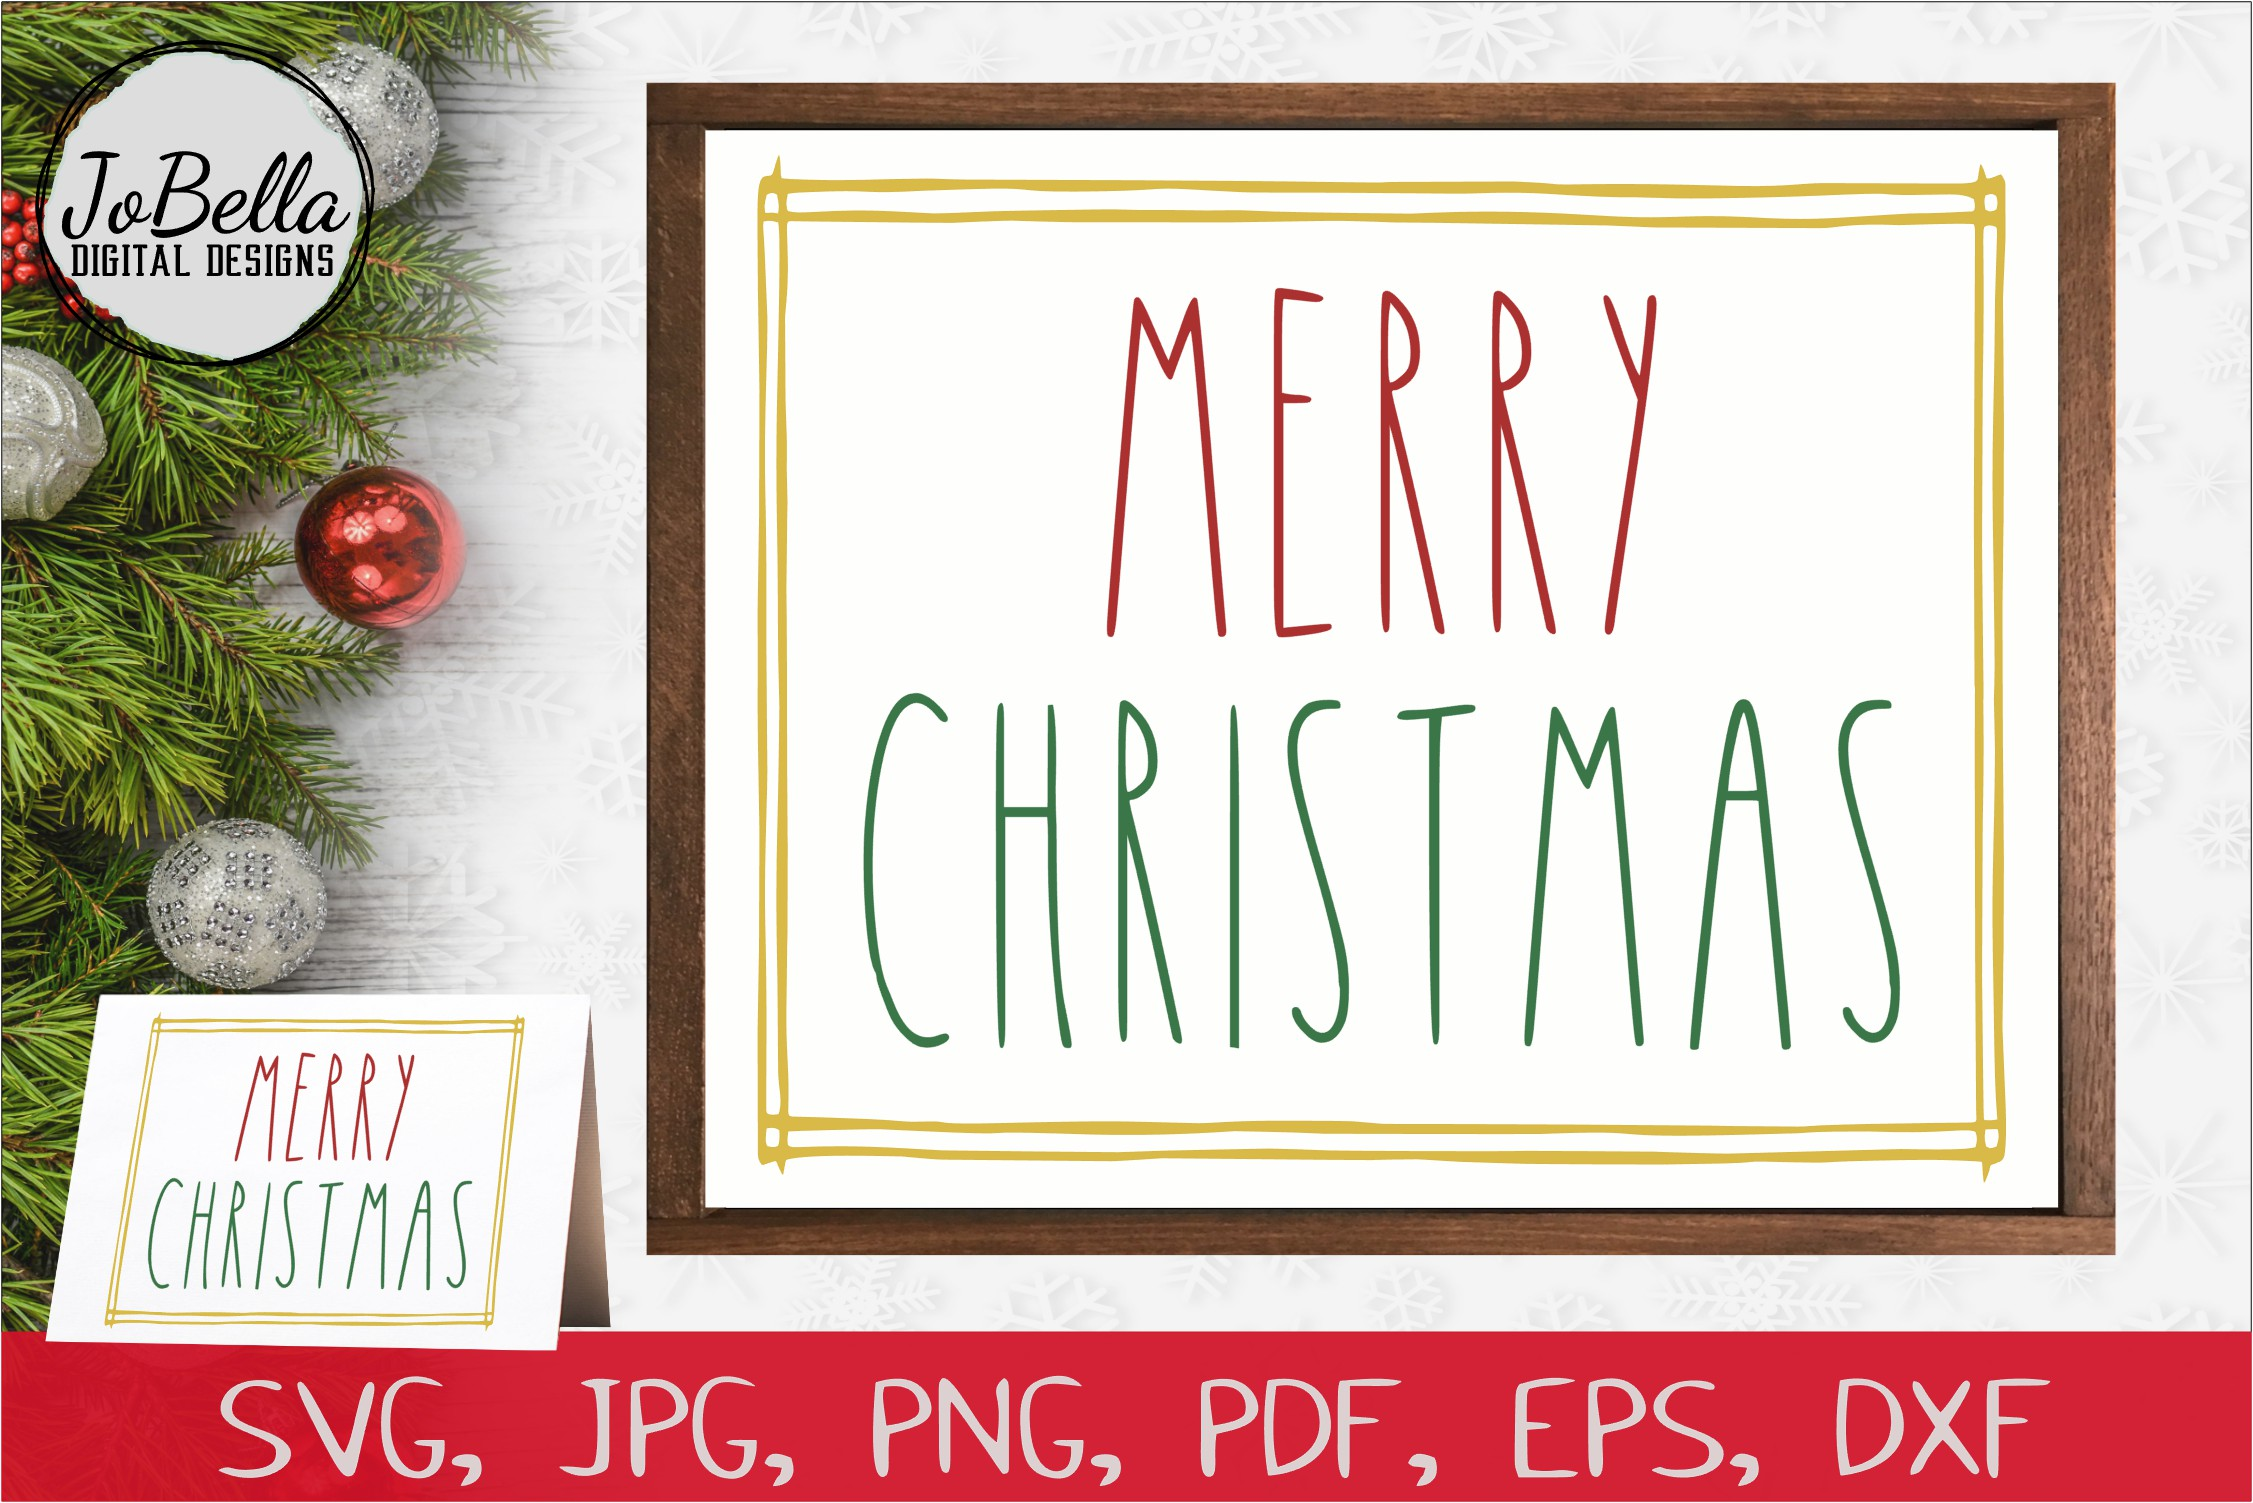 Download Free Rustic Border Merry Christmas Graphic By Jobella Digital Designs for Cricut Explore, Silhouette and other cutting machines.